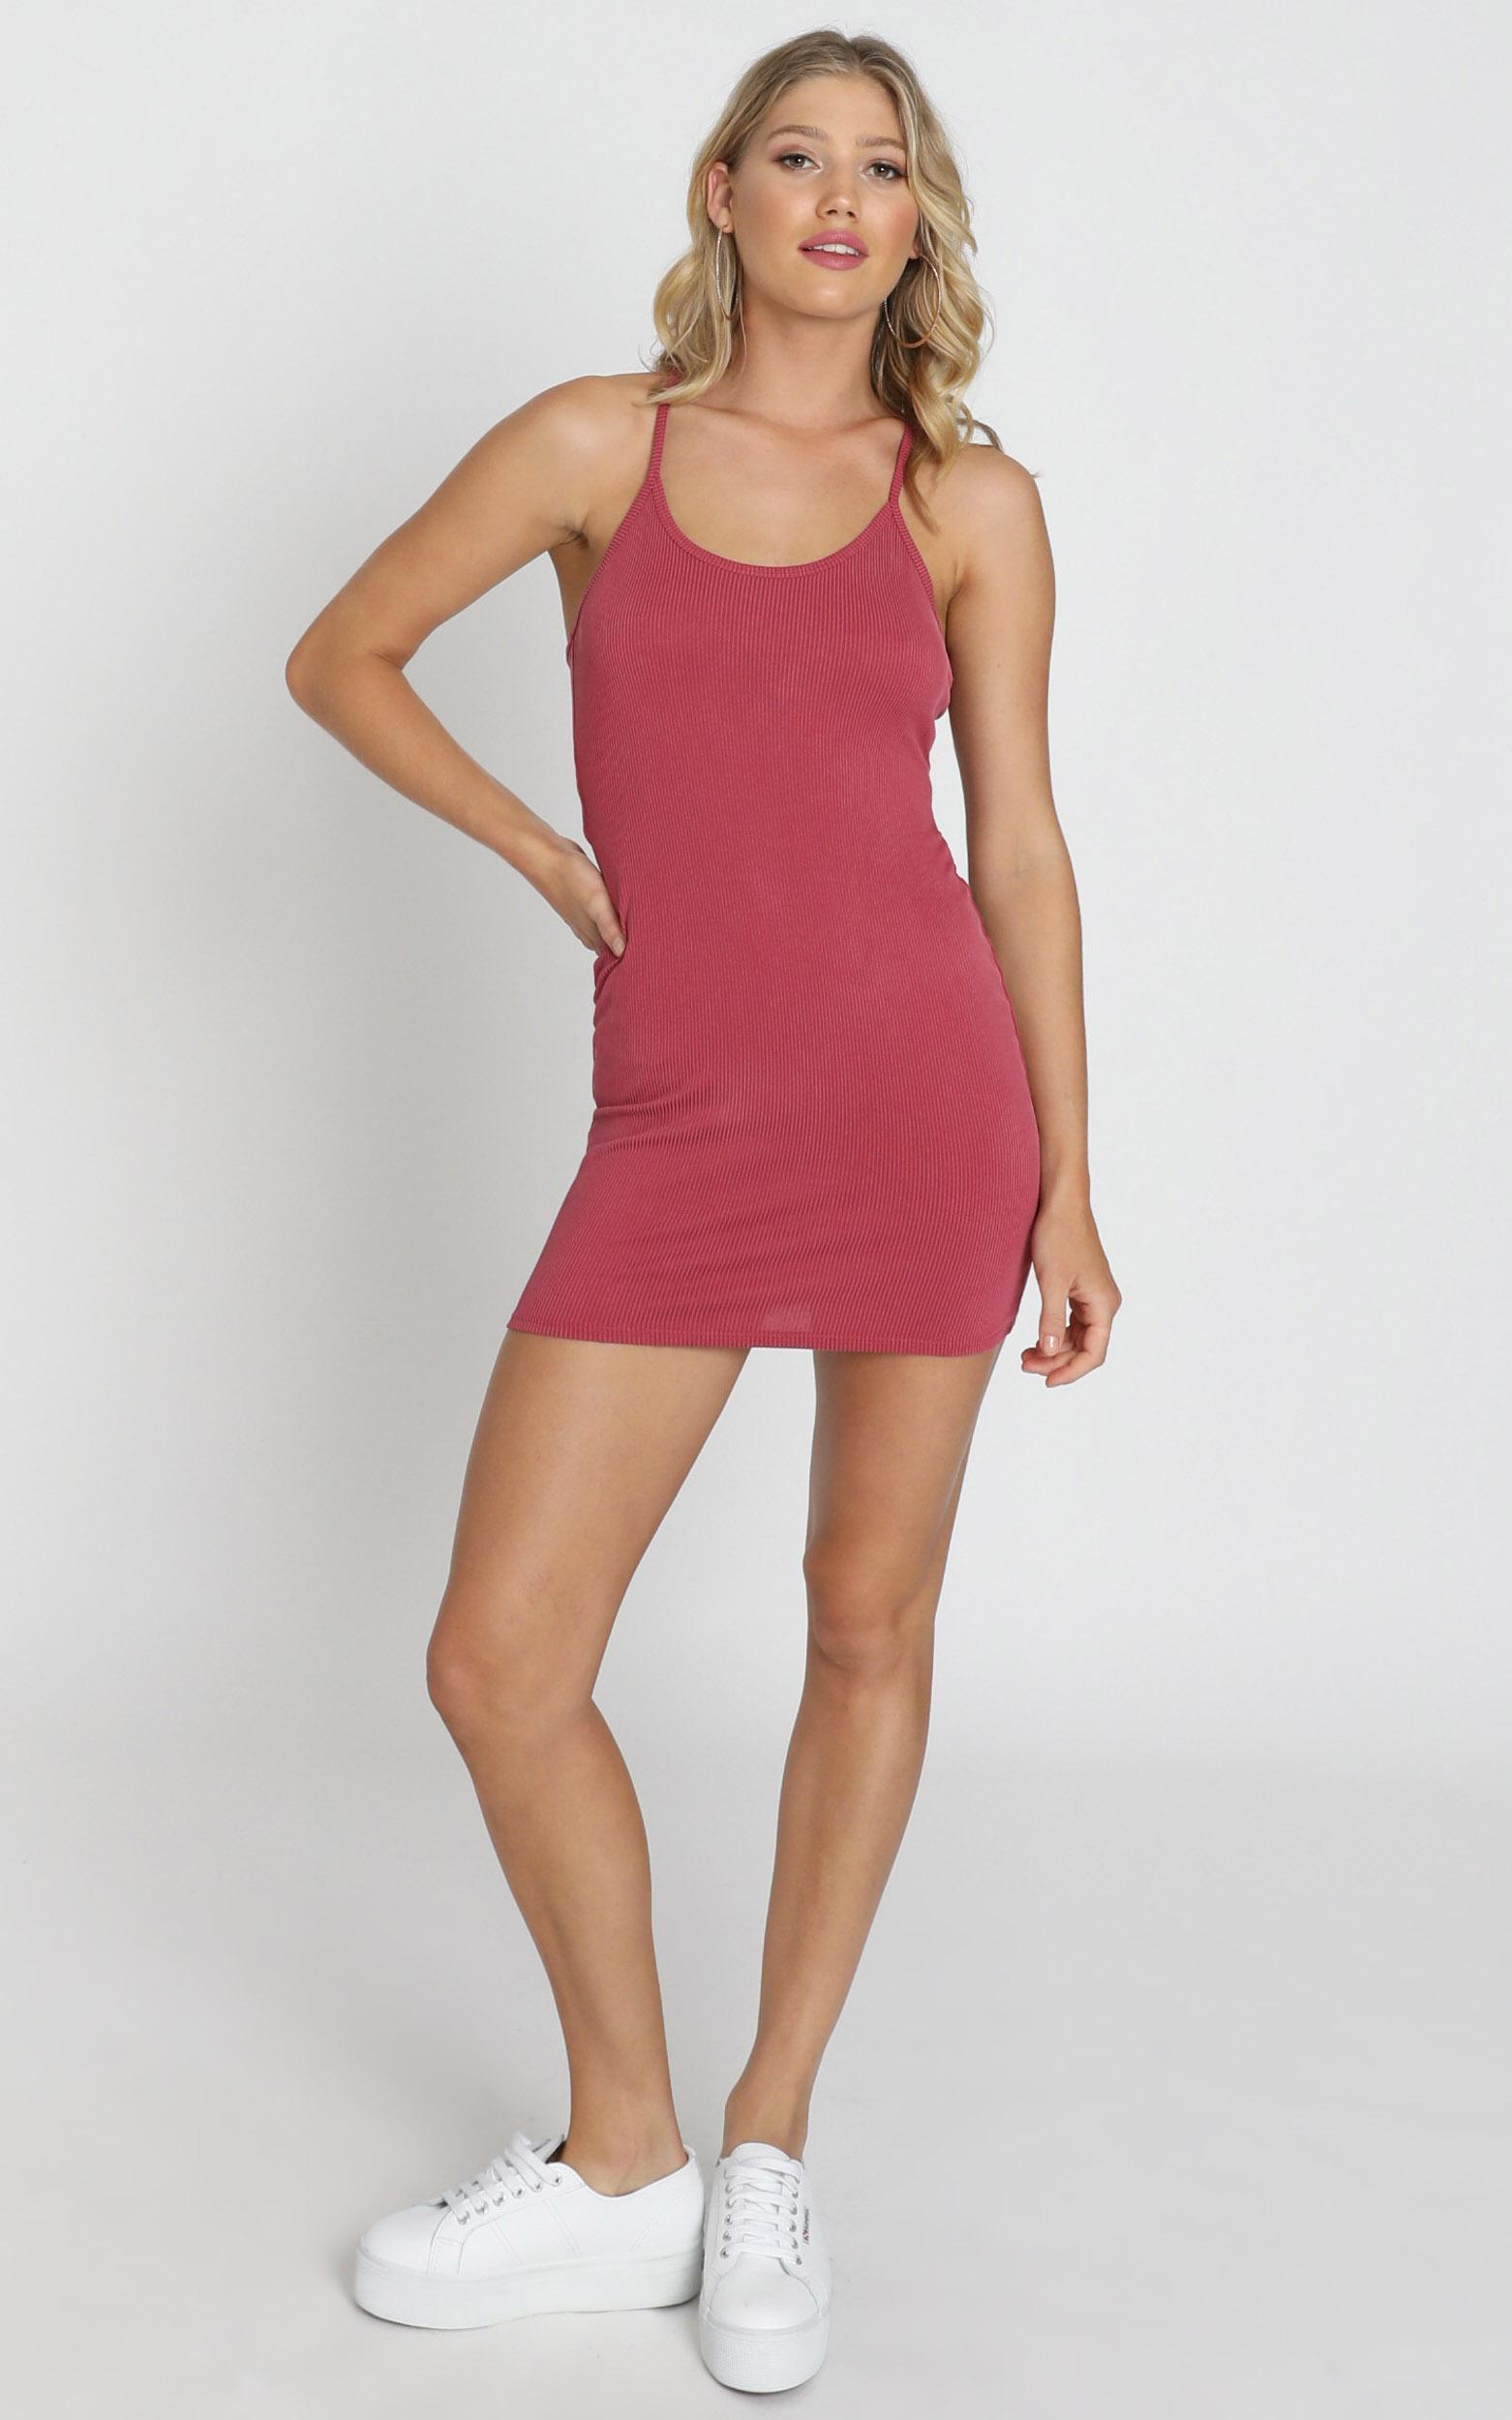 Zinnia Dress in pink - 8 (S), Pink, hi-res image number null